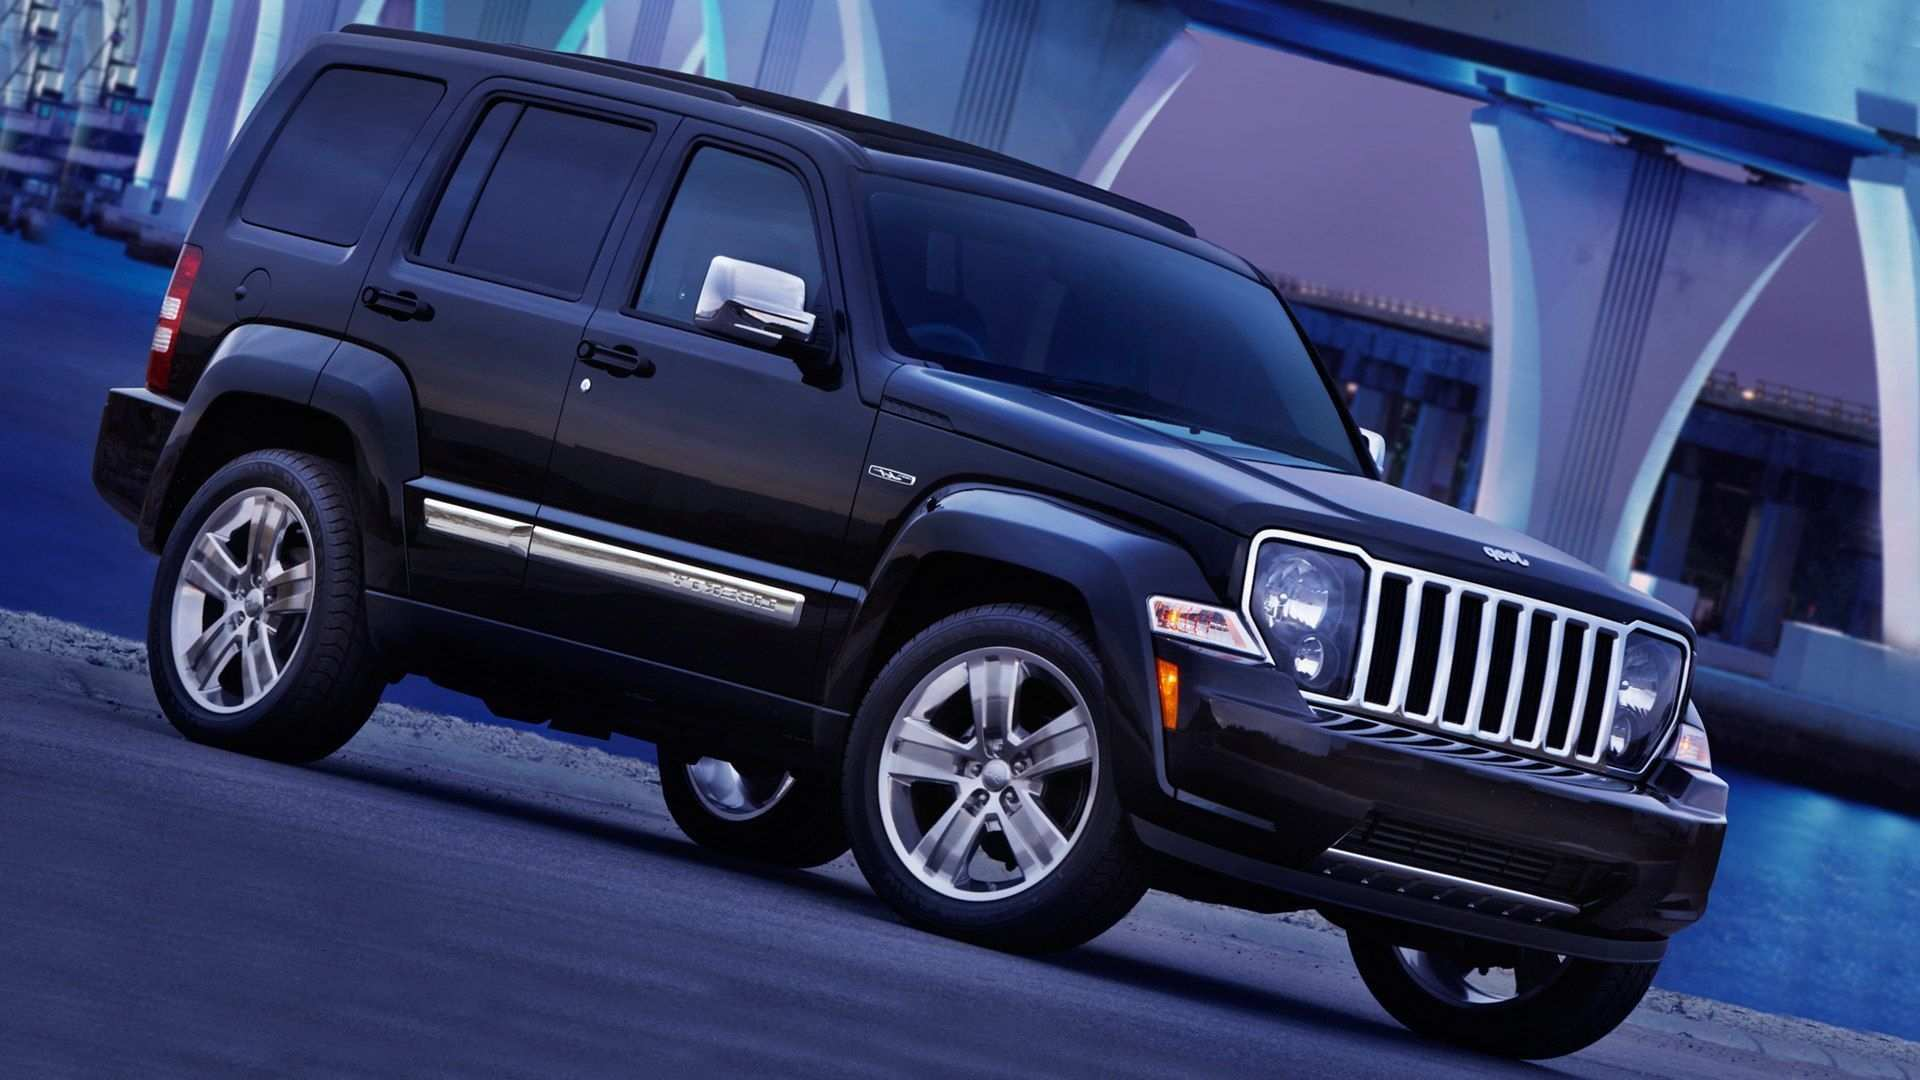 38 Concept of Jeep Liberty 2020 Spy Shoot by Jeep Liberty 2020